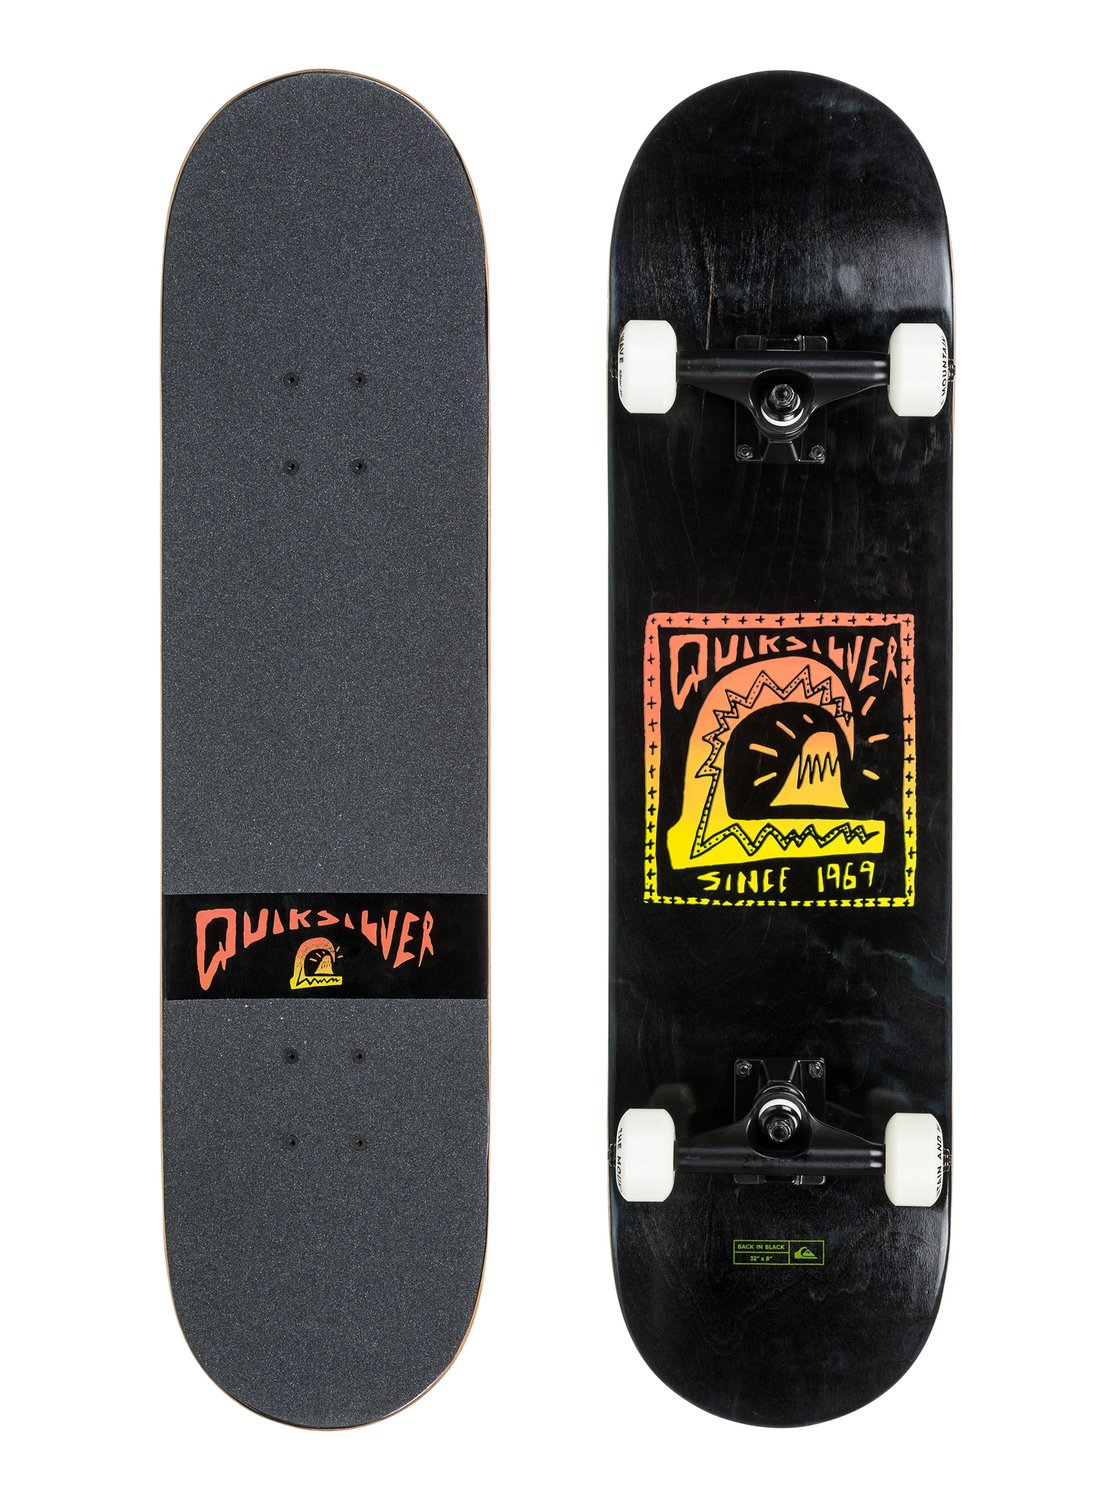 ????????? Back in black 8 - quiksilver